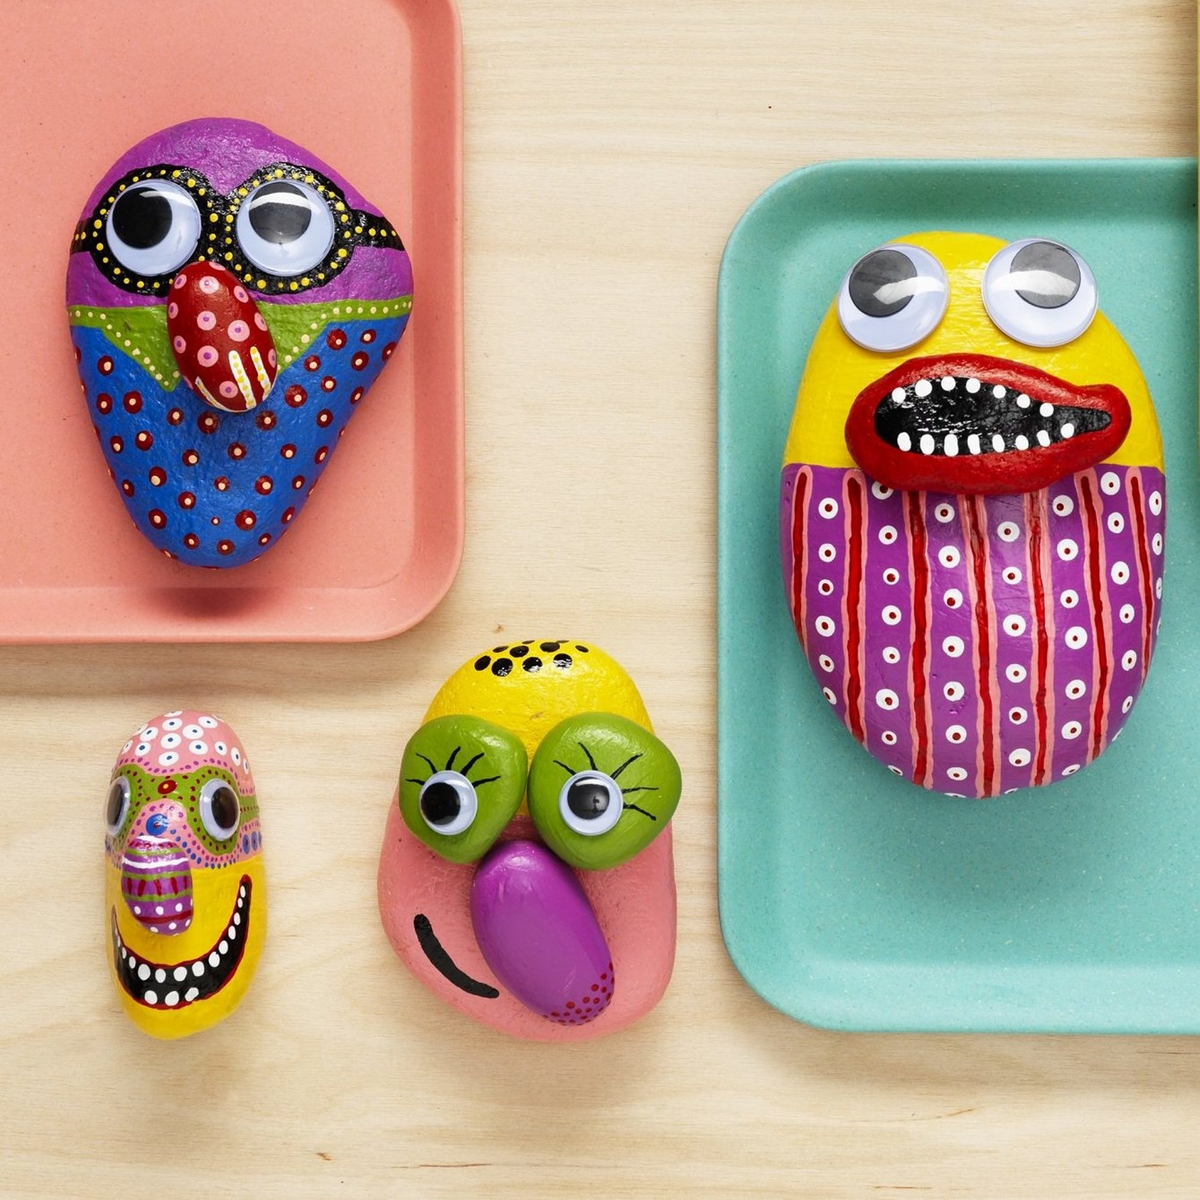 Paint funny stone monsters